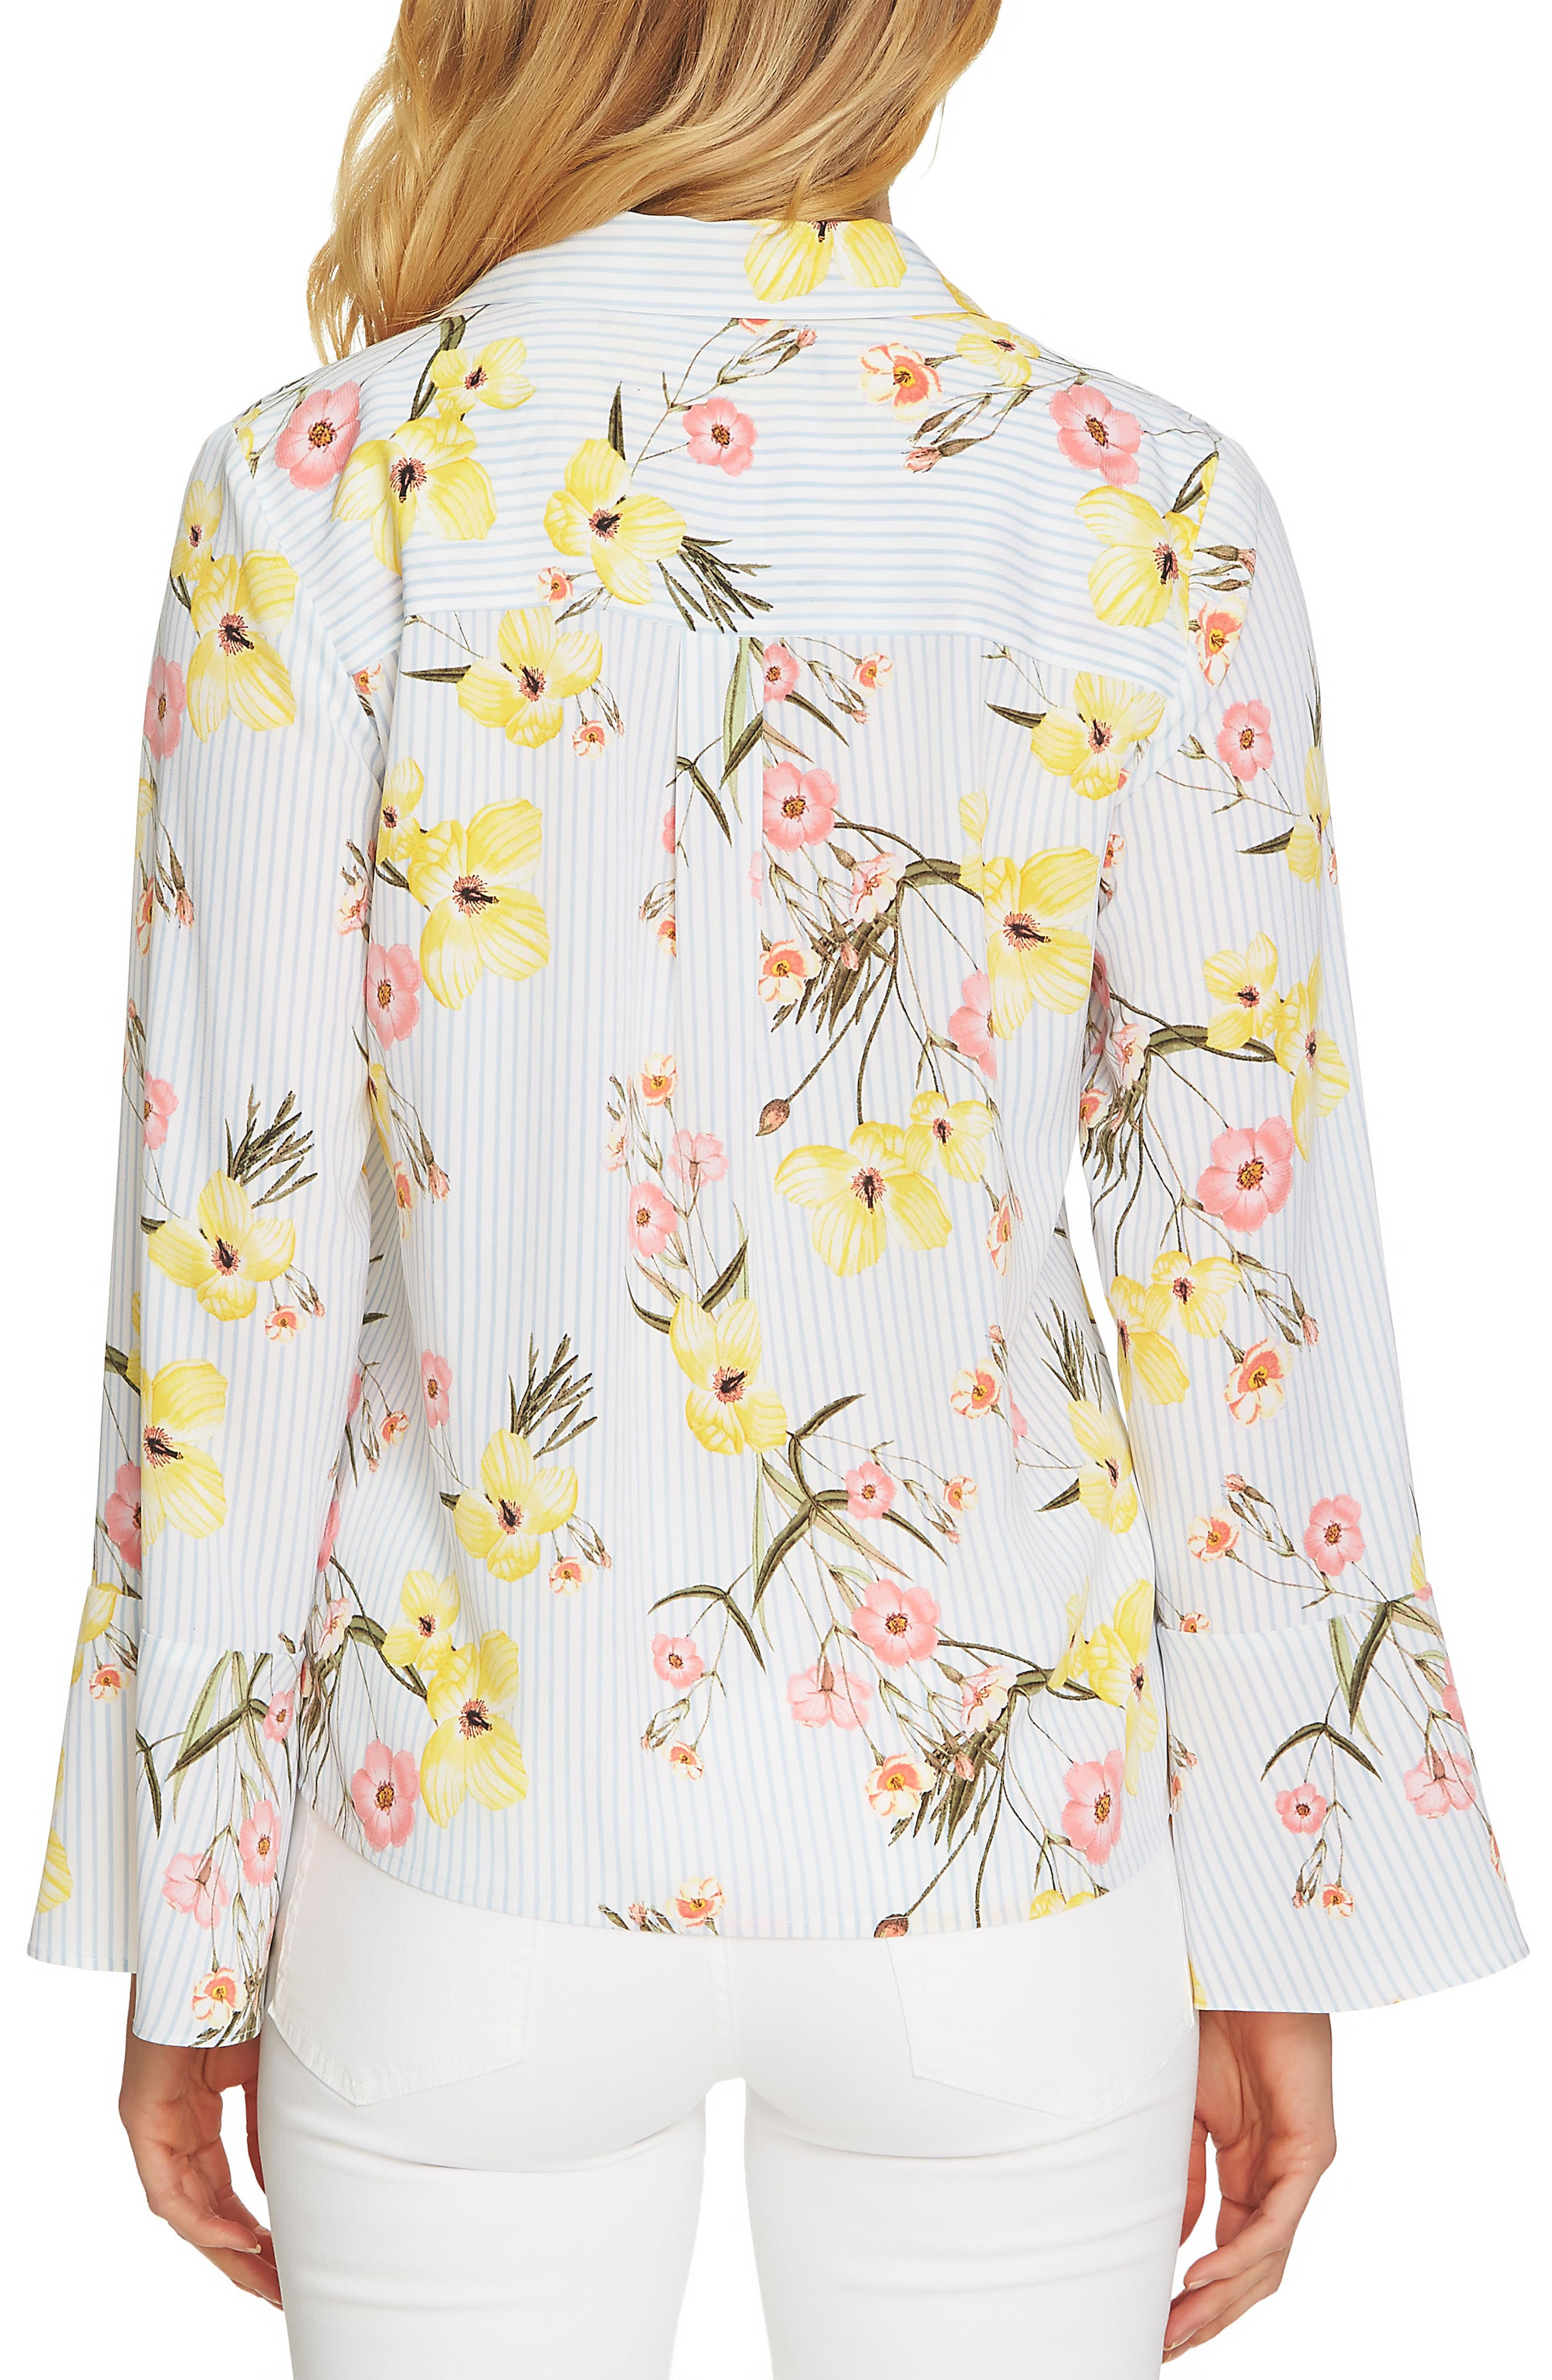 Botanical Blooms Collared Top,                             Alternate thumbnail 2, color,